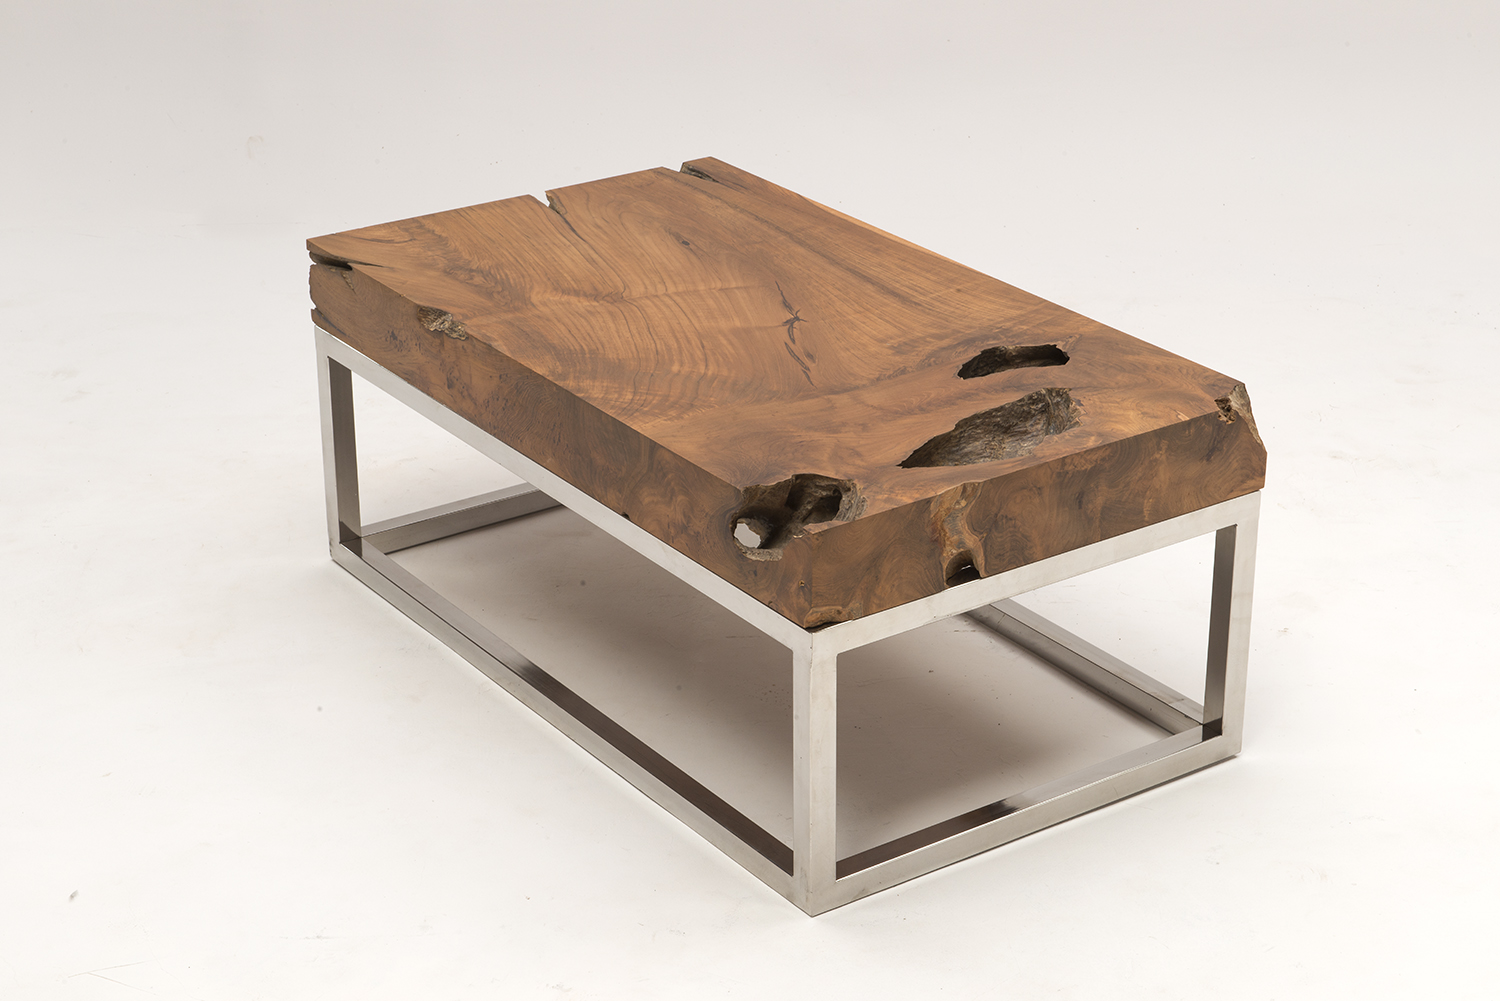 Chista furniture coffee tables landscape landscape 52 for Table 430 52